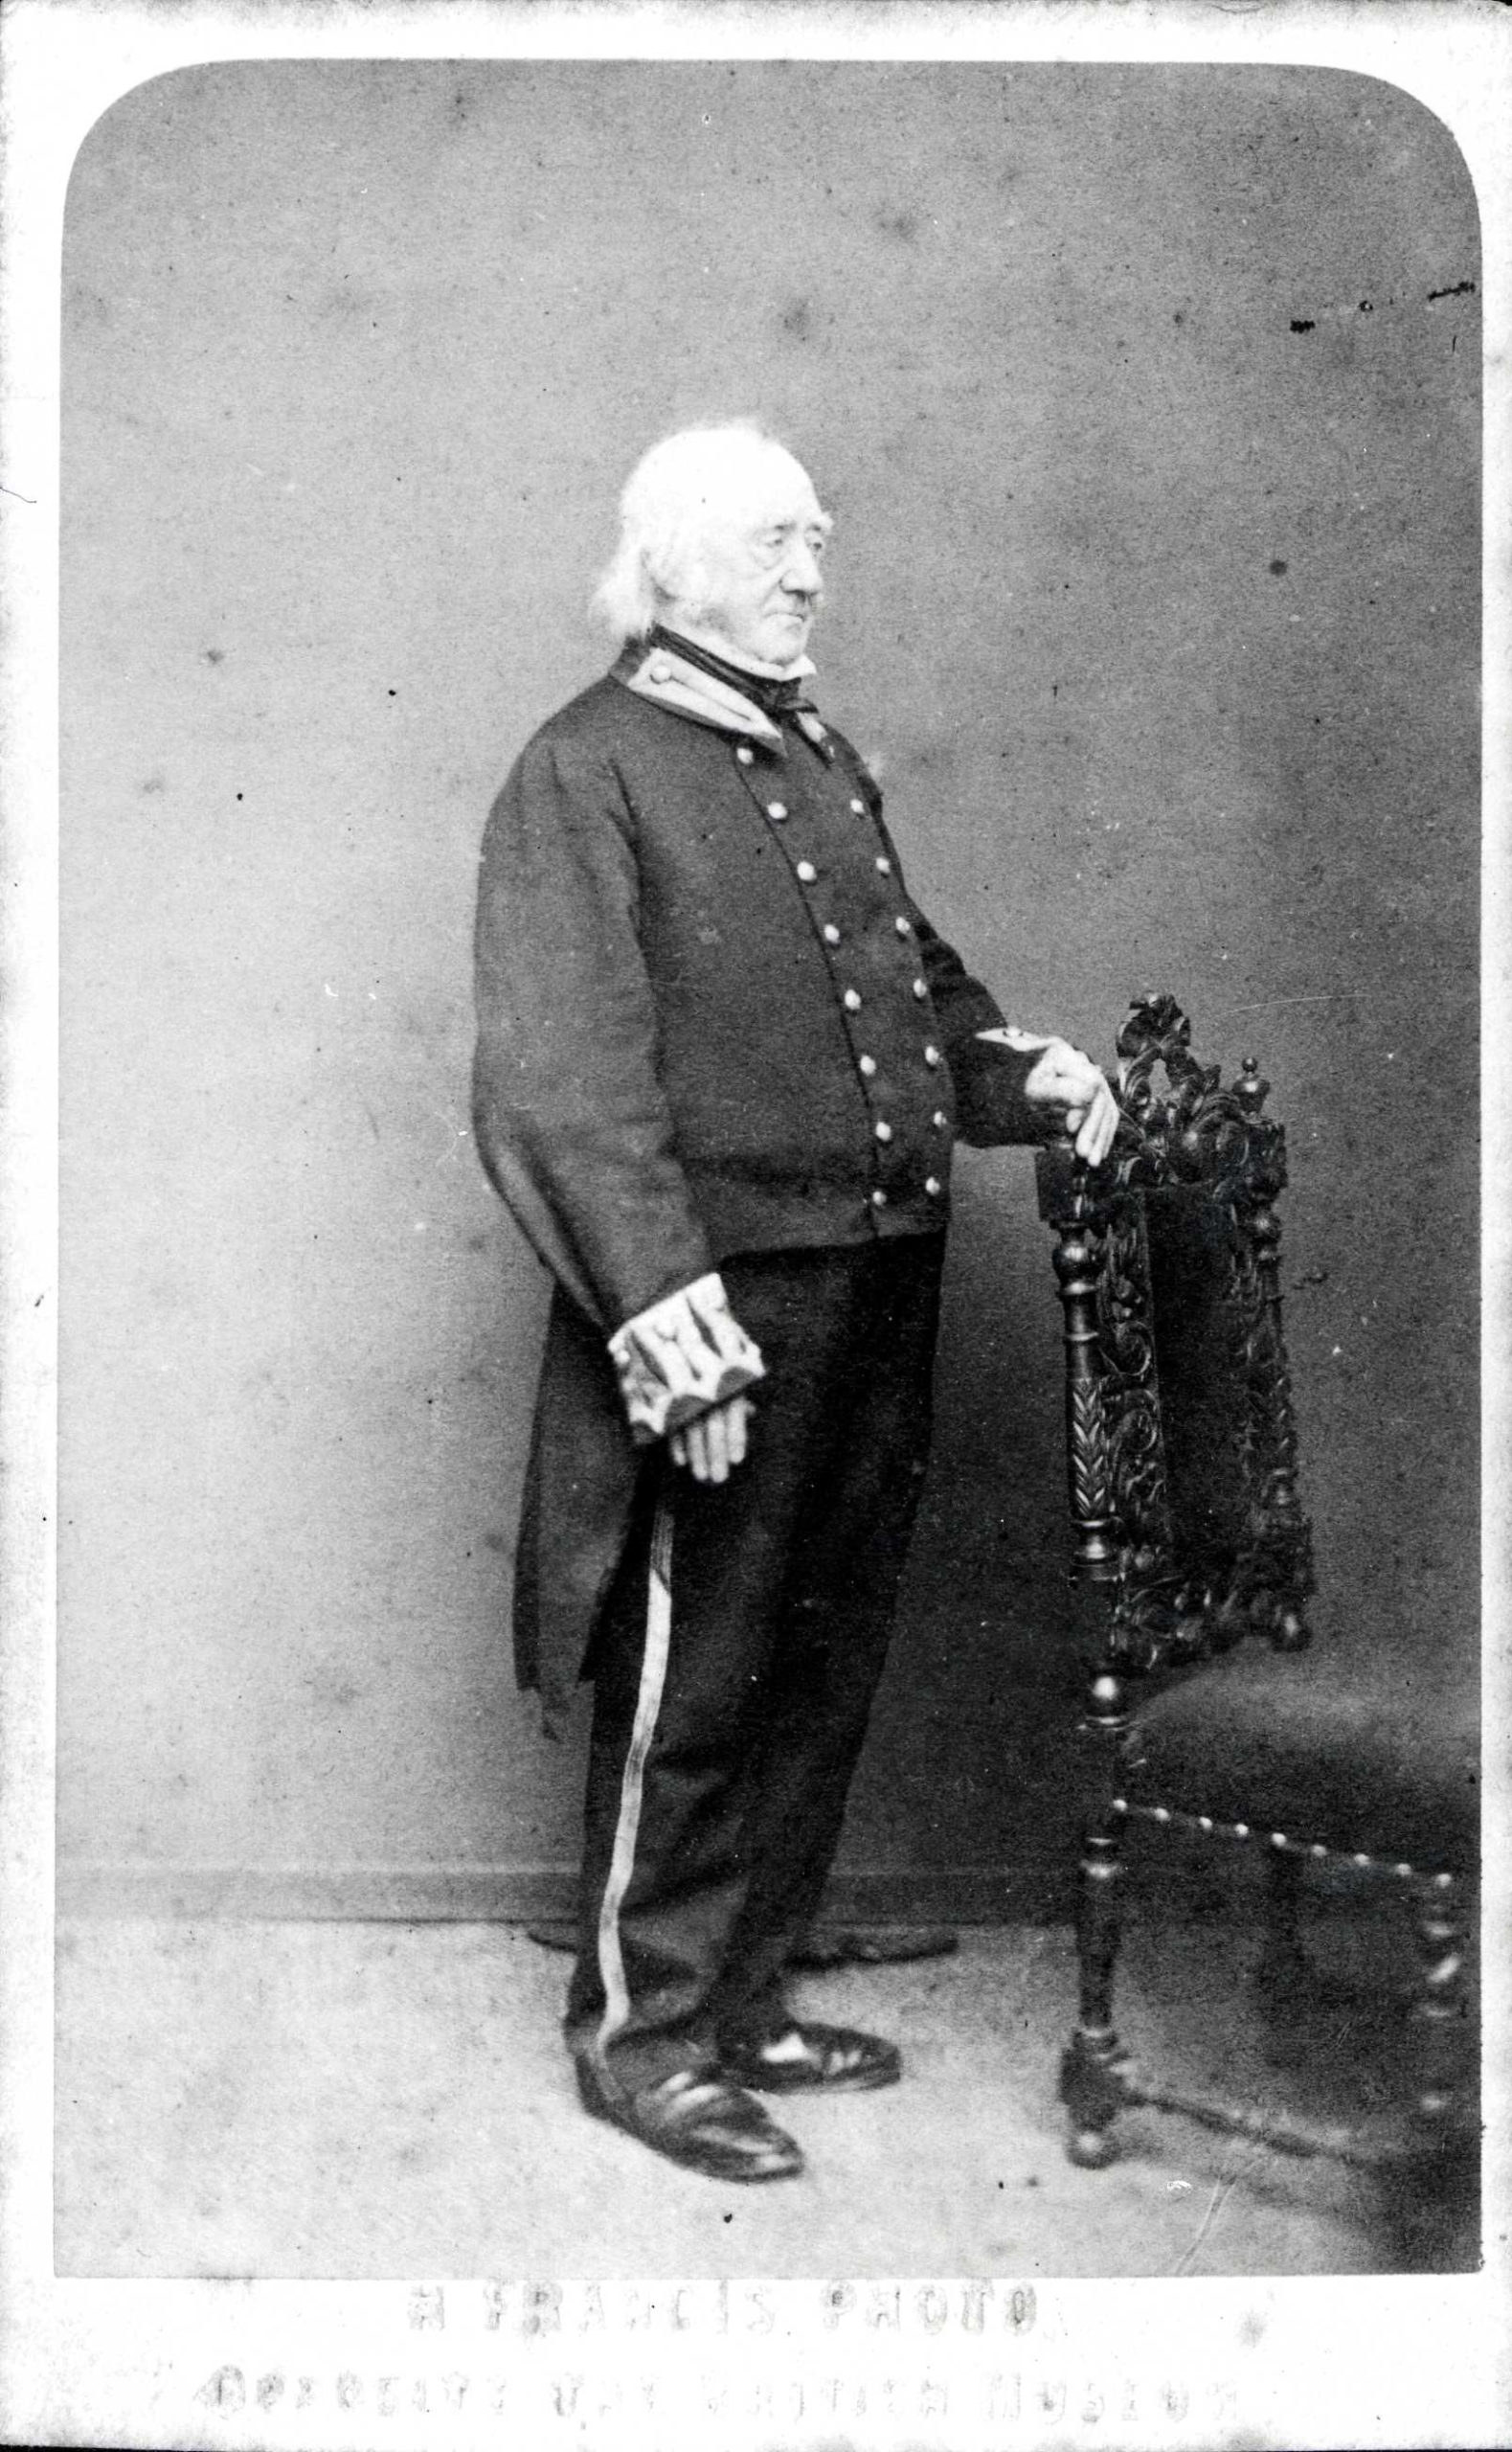 A black-and-white photograph of n elderly man wearing the Windsor Livery - a formal double-breasted jacket with tails, embroidered collar, shiny shoes, and trousers with piping down the sides.